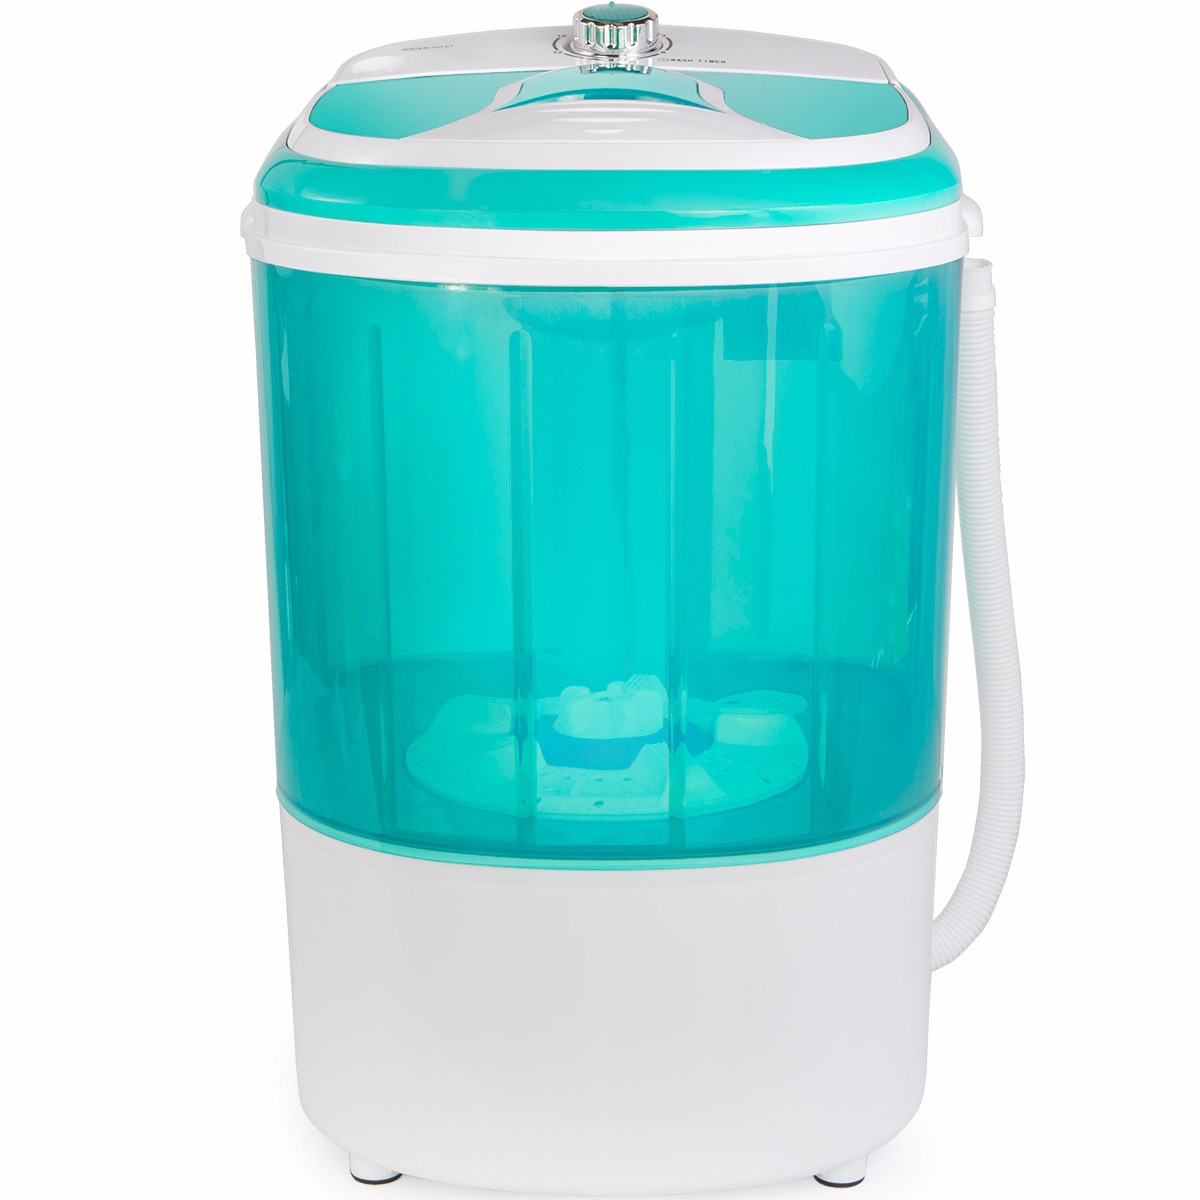 PORTABLE MINI WASHING MACHINE CAN WASH 9LB LOAD FOR R.V APARTMENT ...